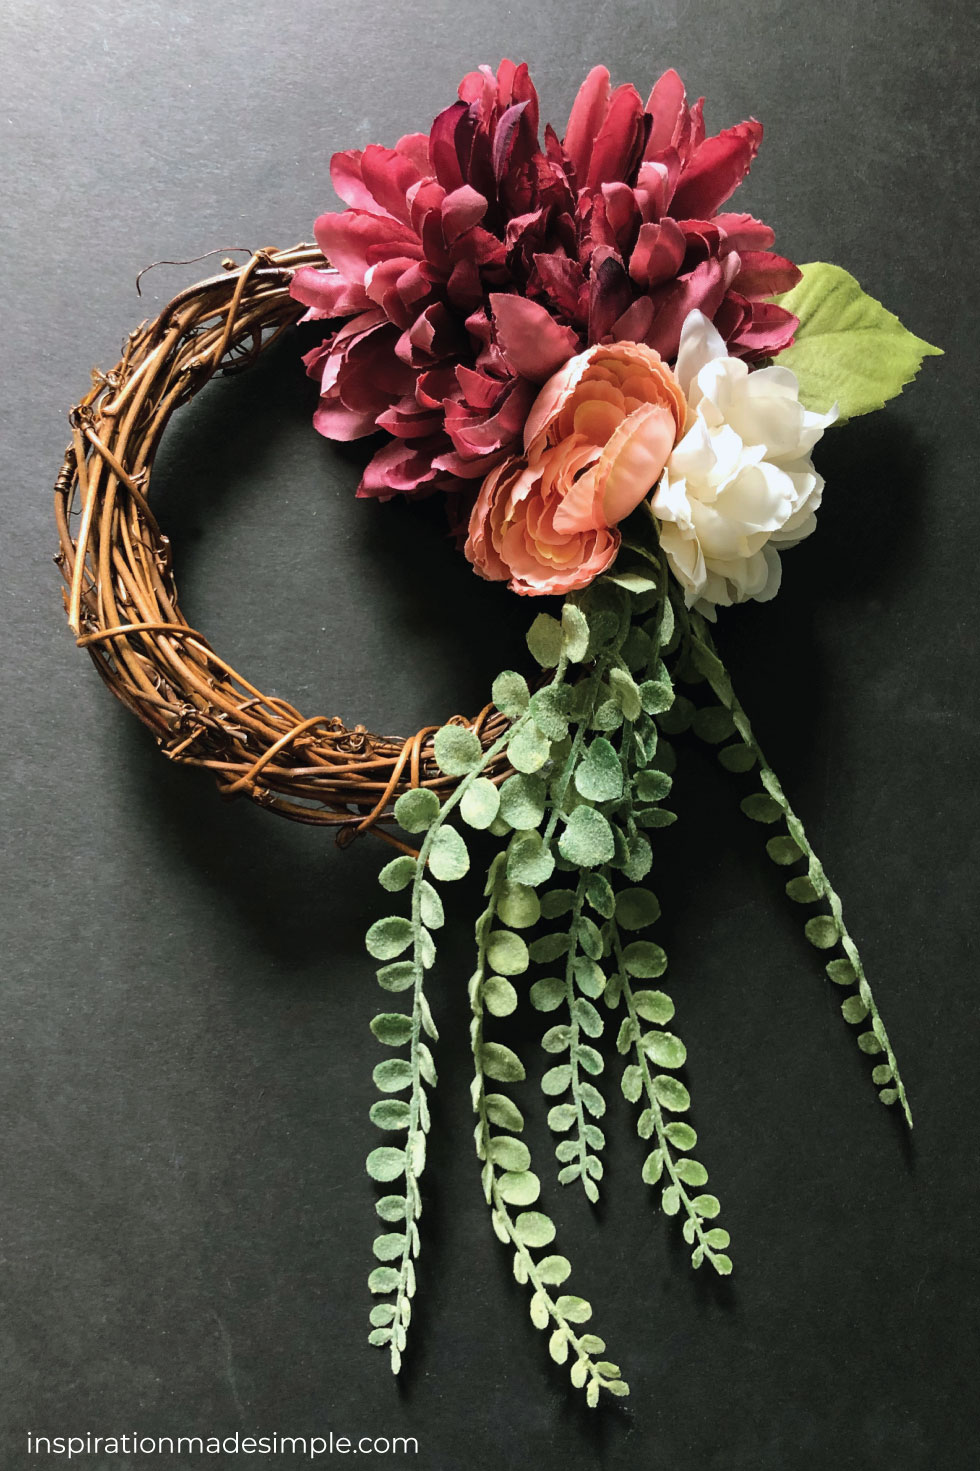 Floral Grapevine Wreath Tutorial